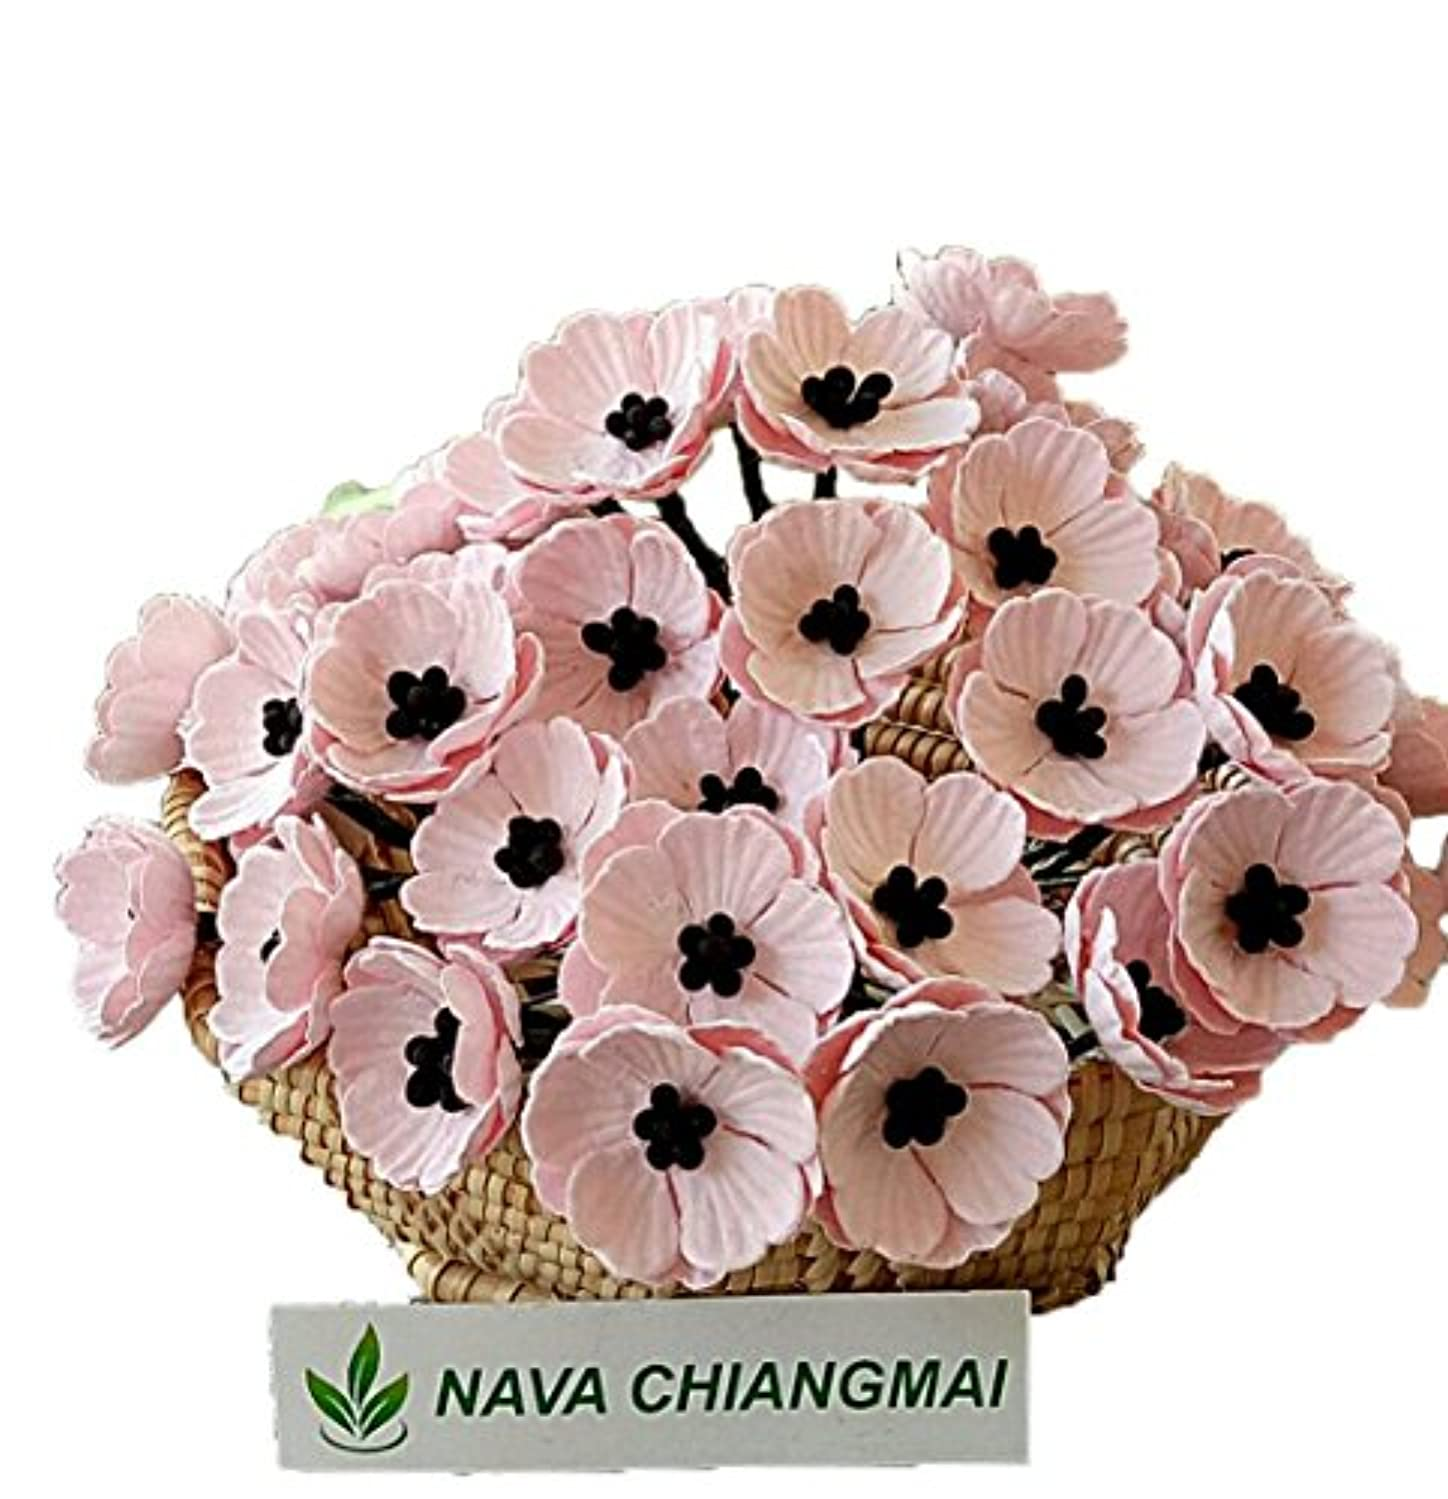 NAVA CHIANGMAI Poppies Mulberry Paper Flower,Poppy Flower for Scrapbooking Wedding Doll House Supplies Card,DIY Crafts,Artificial Mulberry Paper Flowers Wedding Home Decoration. (Pink)